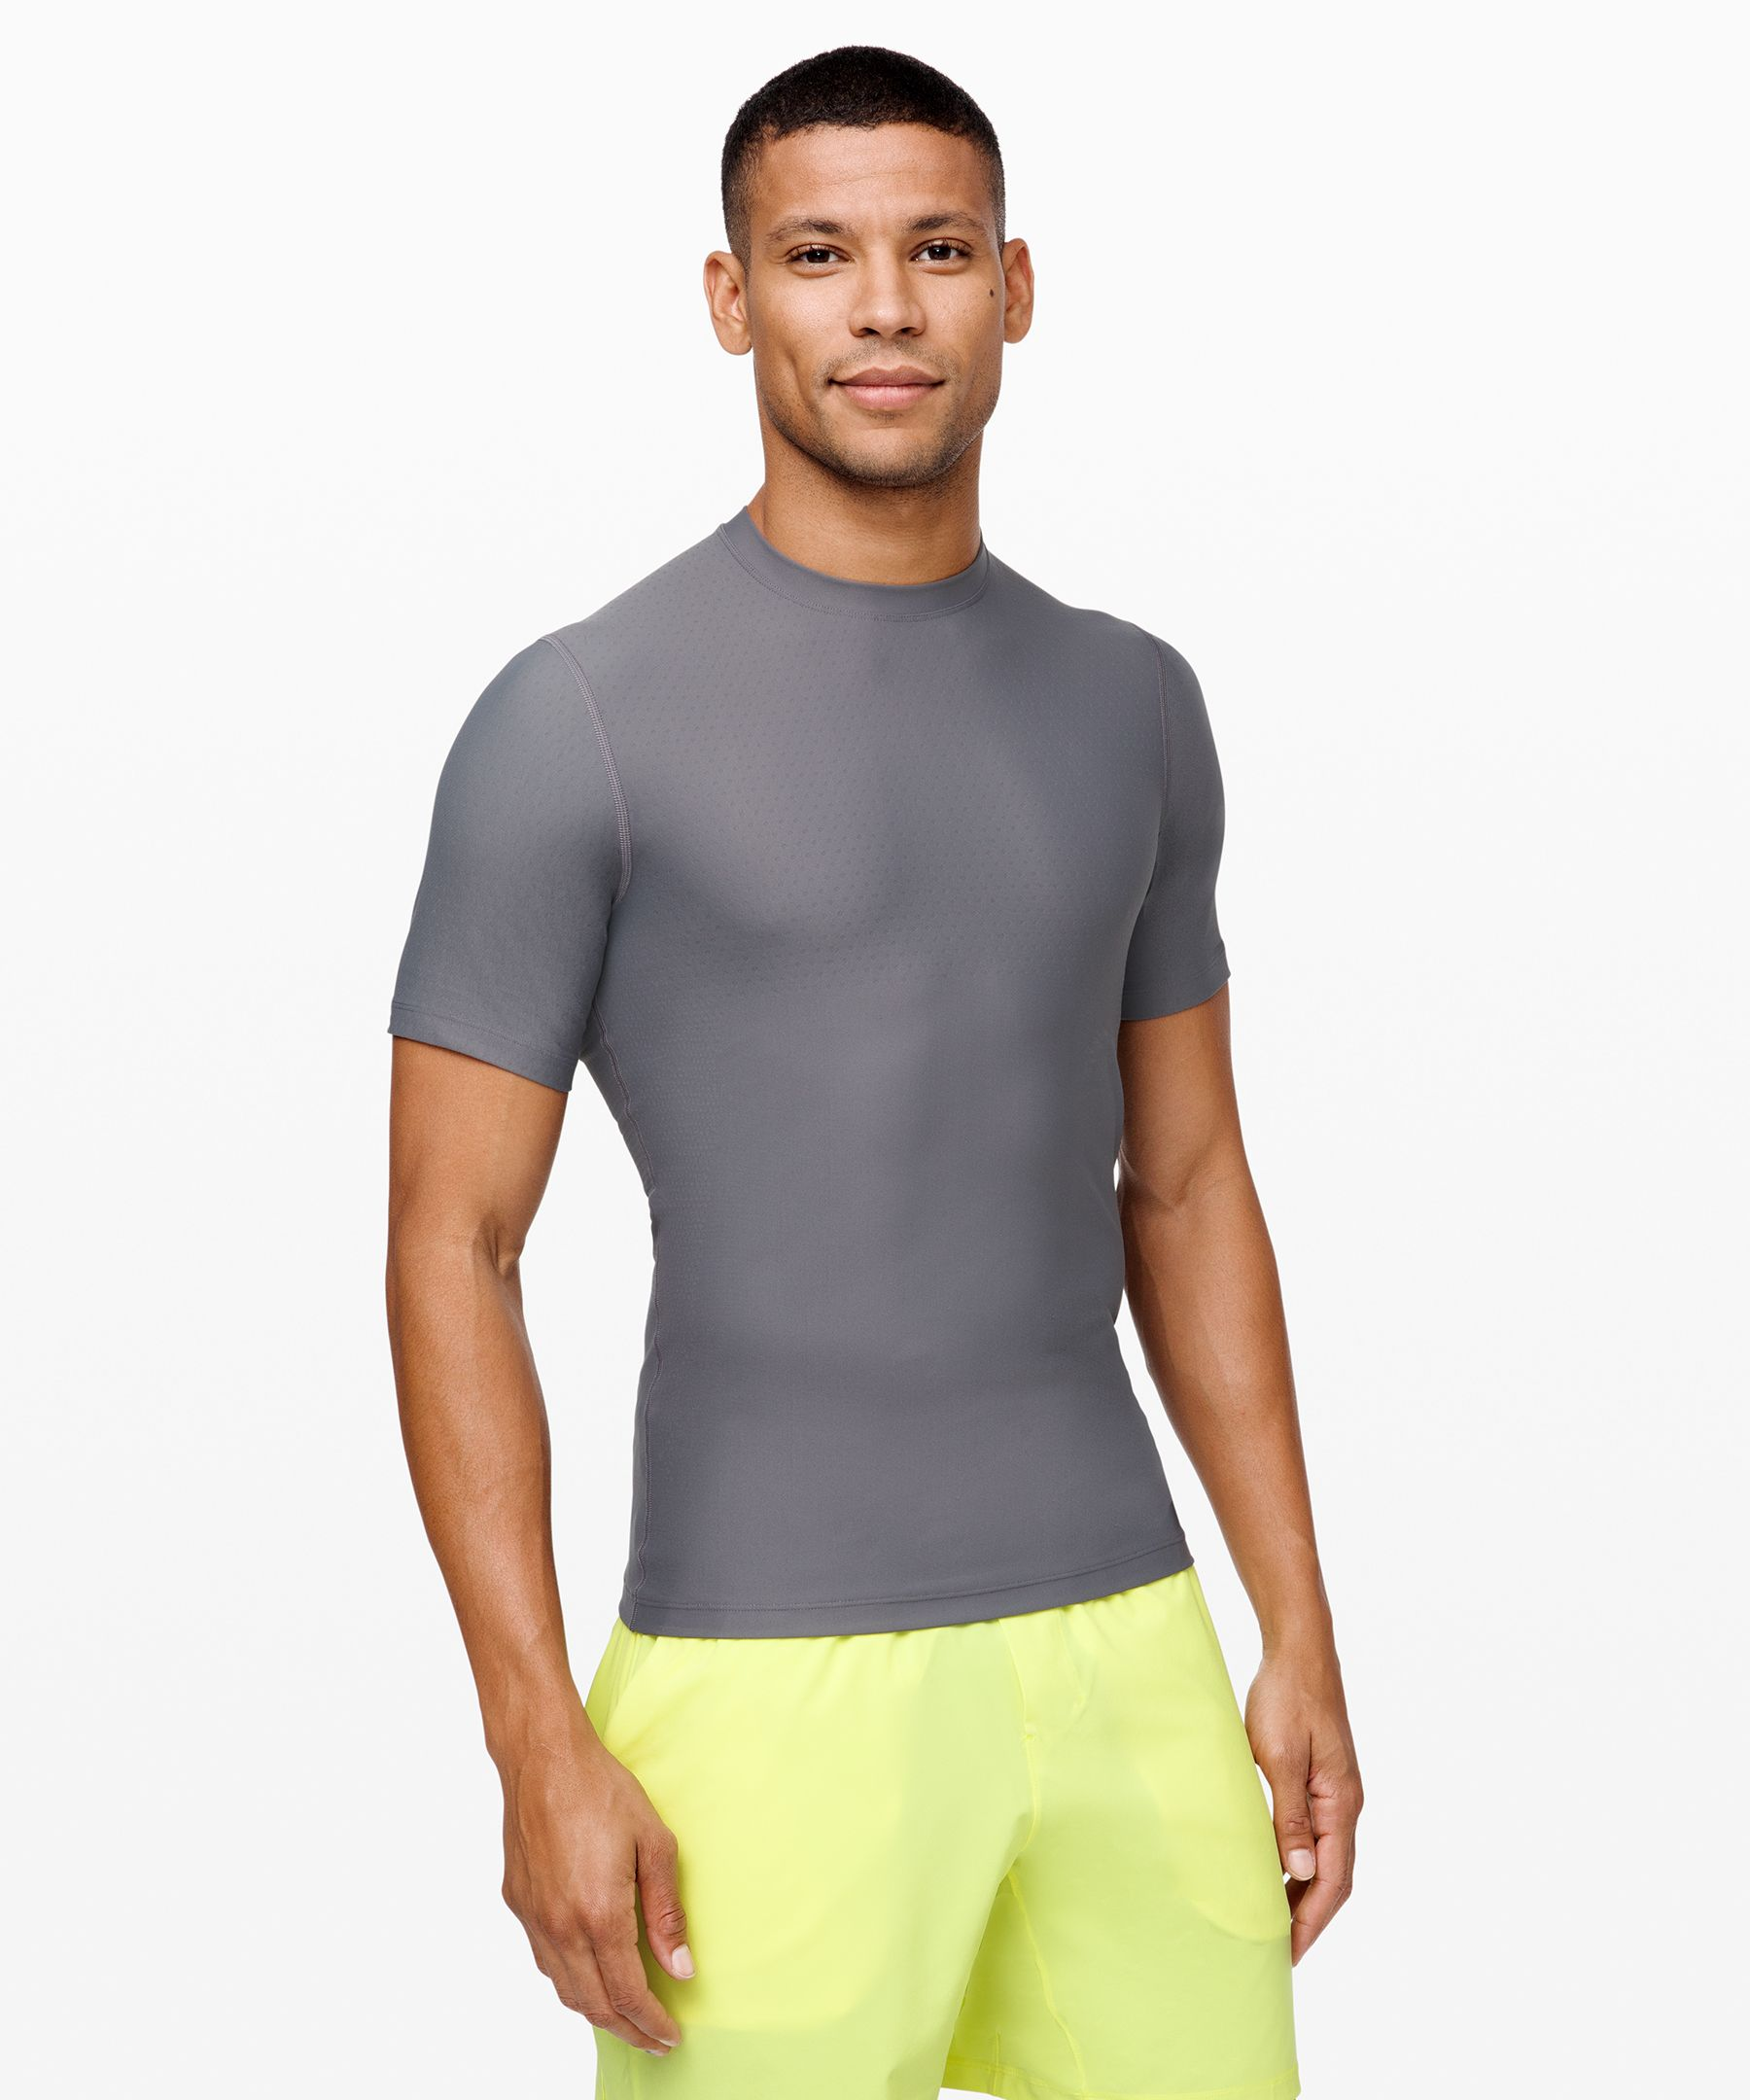 Made for running, this  breathable t-shirt is designed  with zoned ventilation in  high-sweat areas.